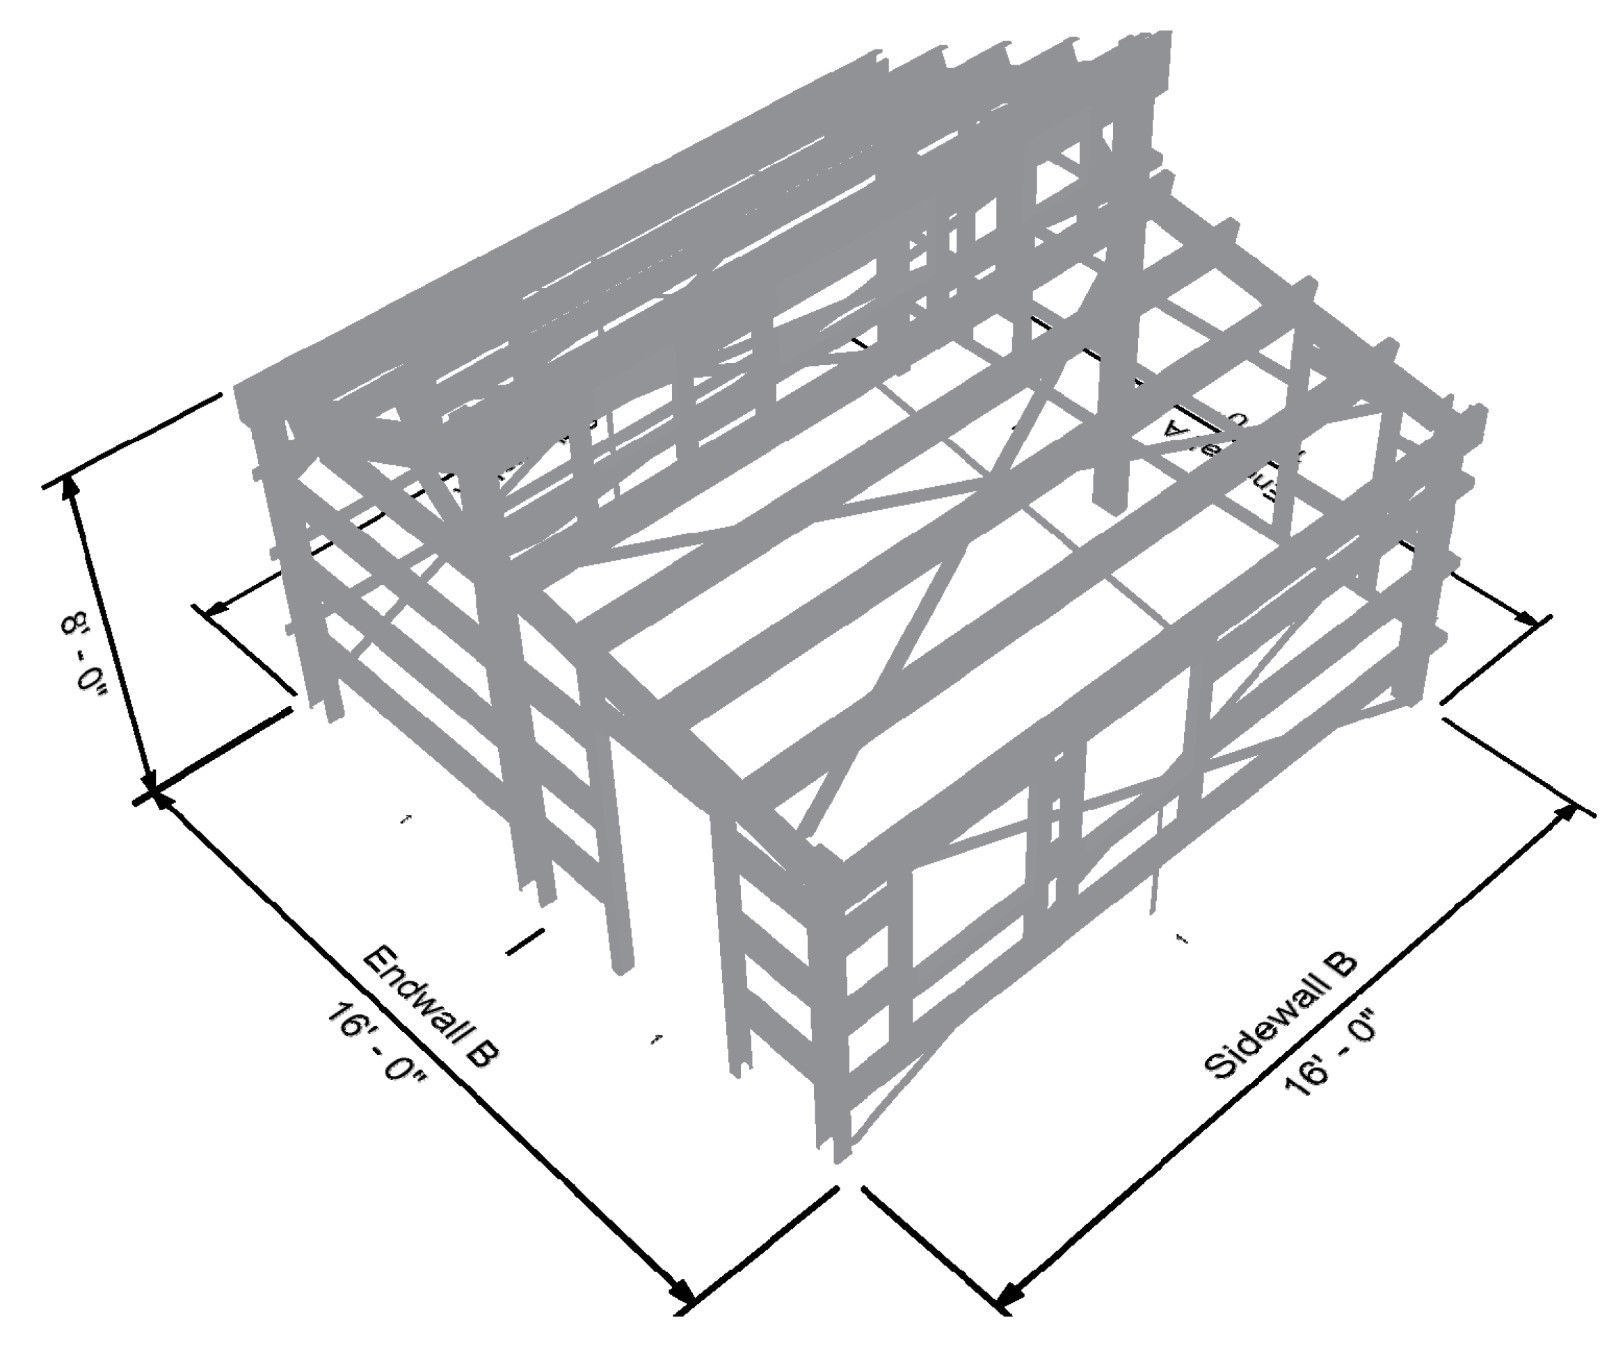 Tiny House Kit - structural view. All steel kit, easy to assemble ...